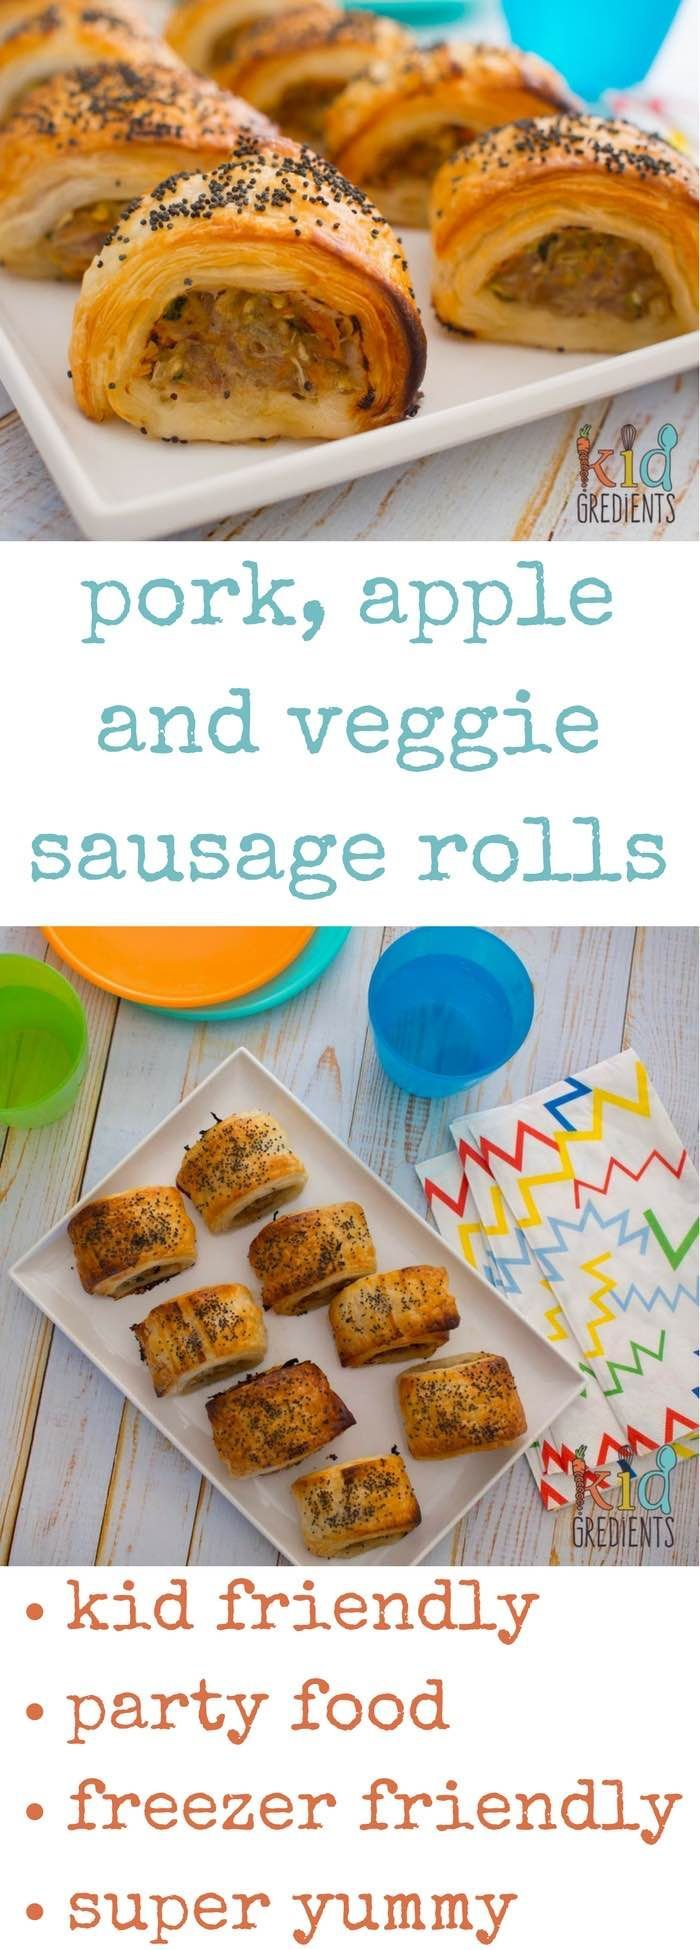 Pork, apple and veggie sausage rolls perfect as a party food and great to have in the freezer! So yummy and filled with hidden veggies. Easy recipe the kids will love. #recipe #sausagerolls #partyfood #kidfood #kidfriendly #funfood #familyfood